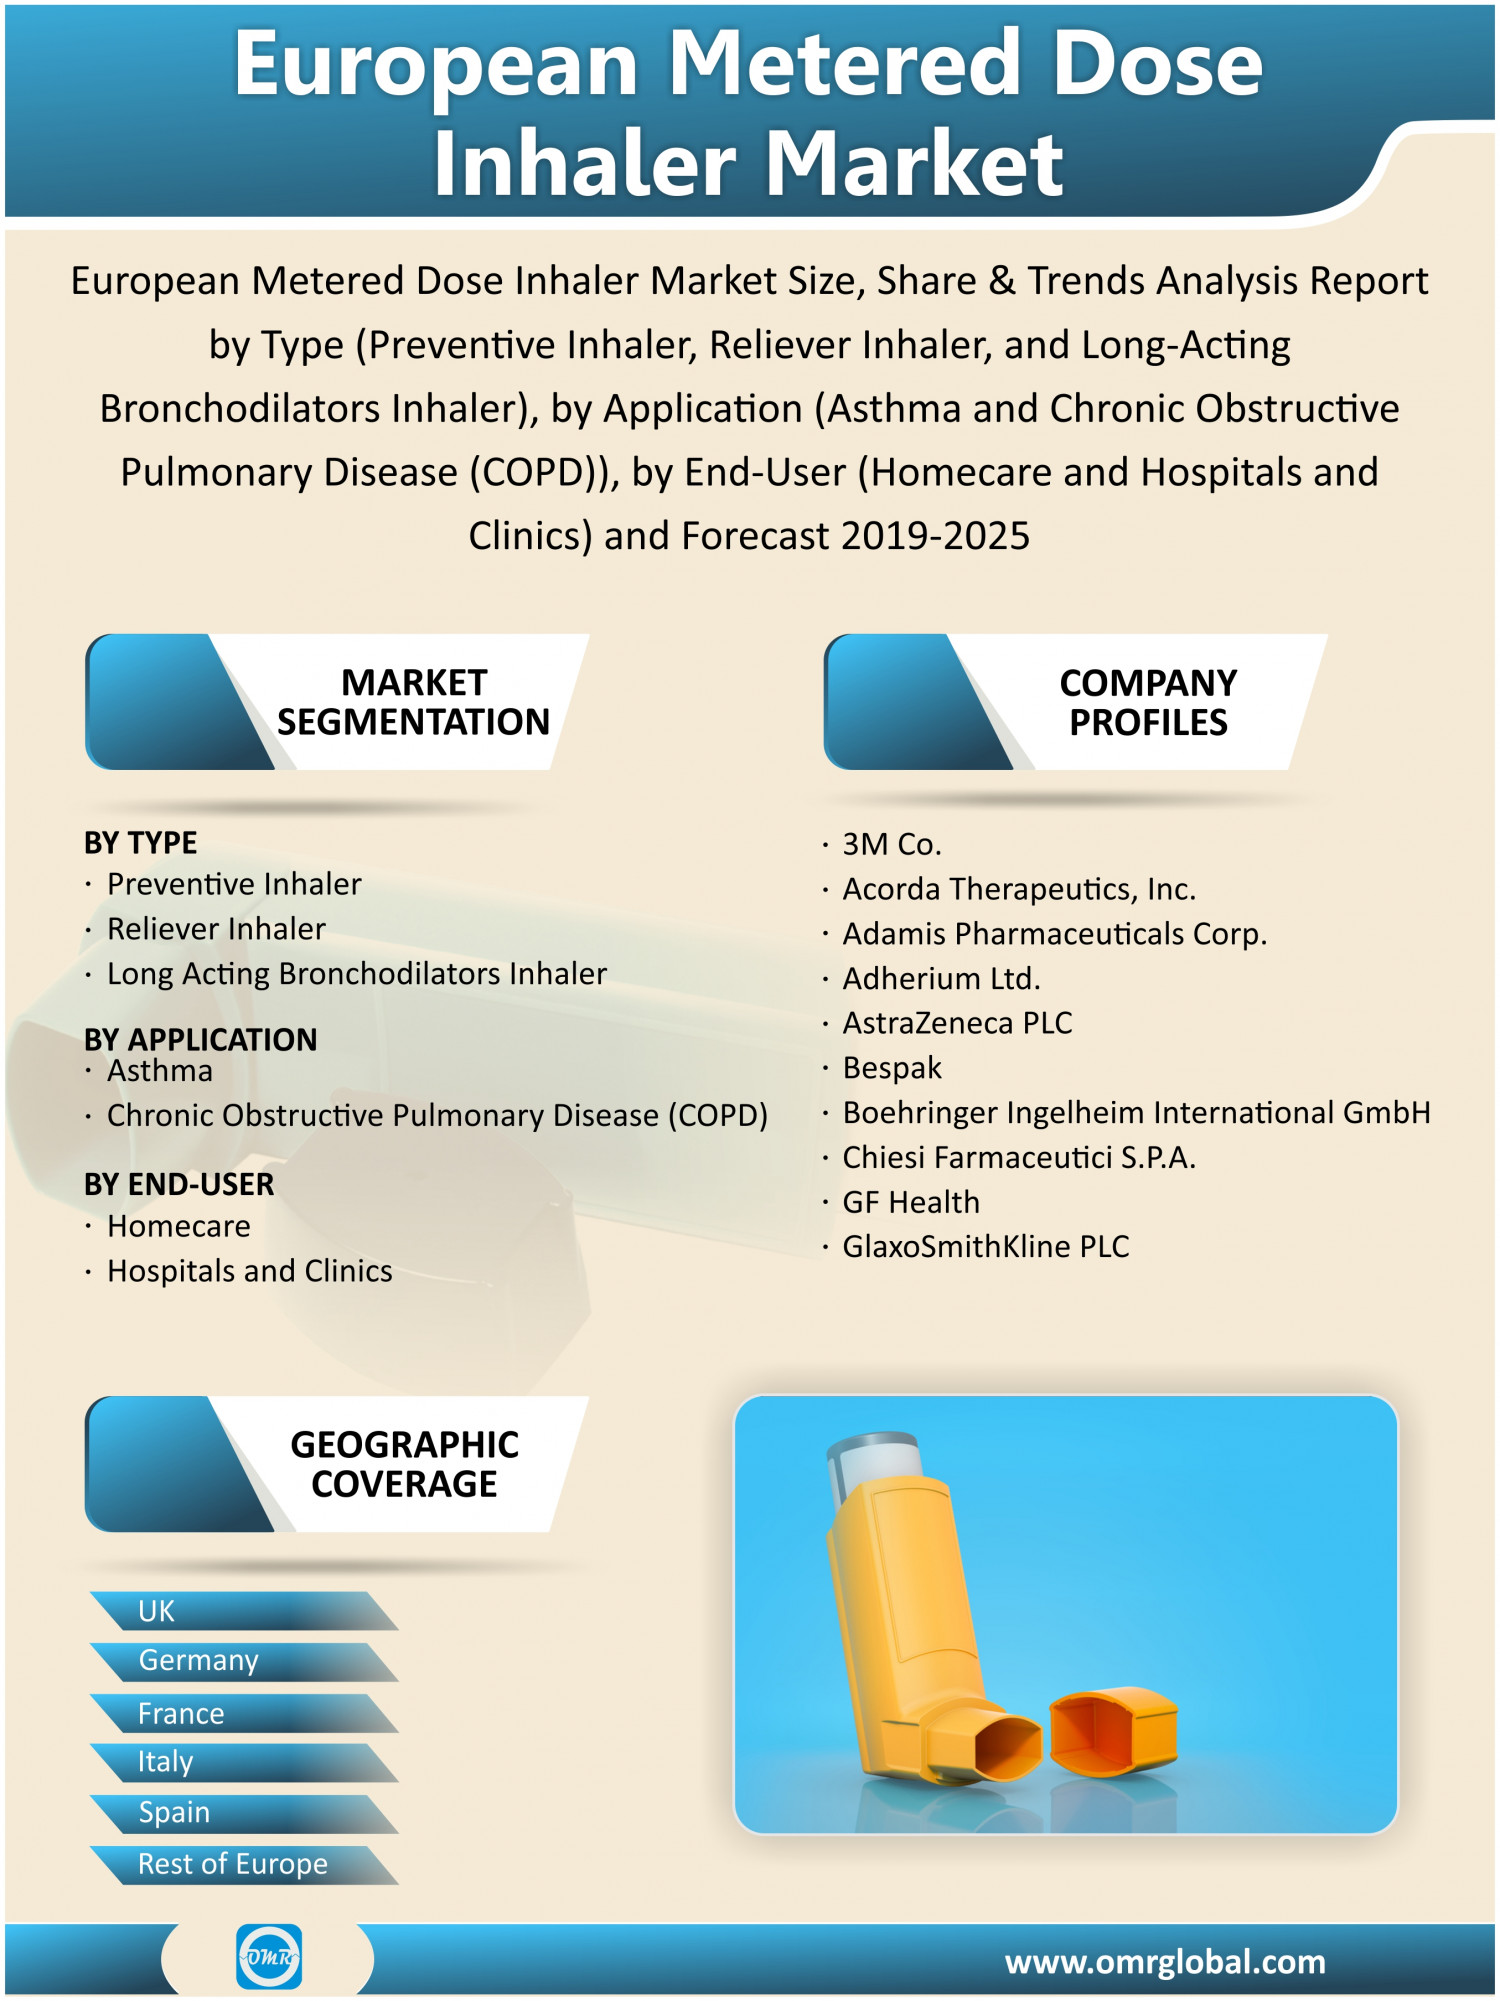 European Metered Dose Inhaler Market Size, Share, Growth, Research and Forecast 2019-2025 Infographic